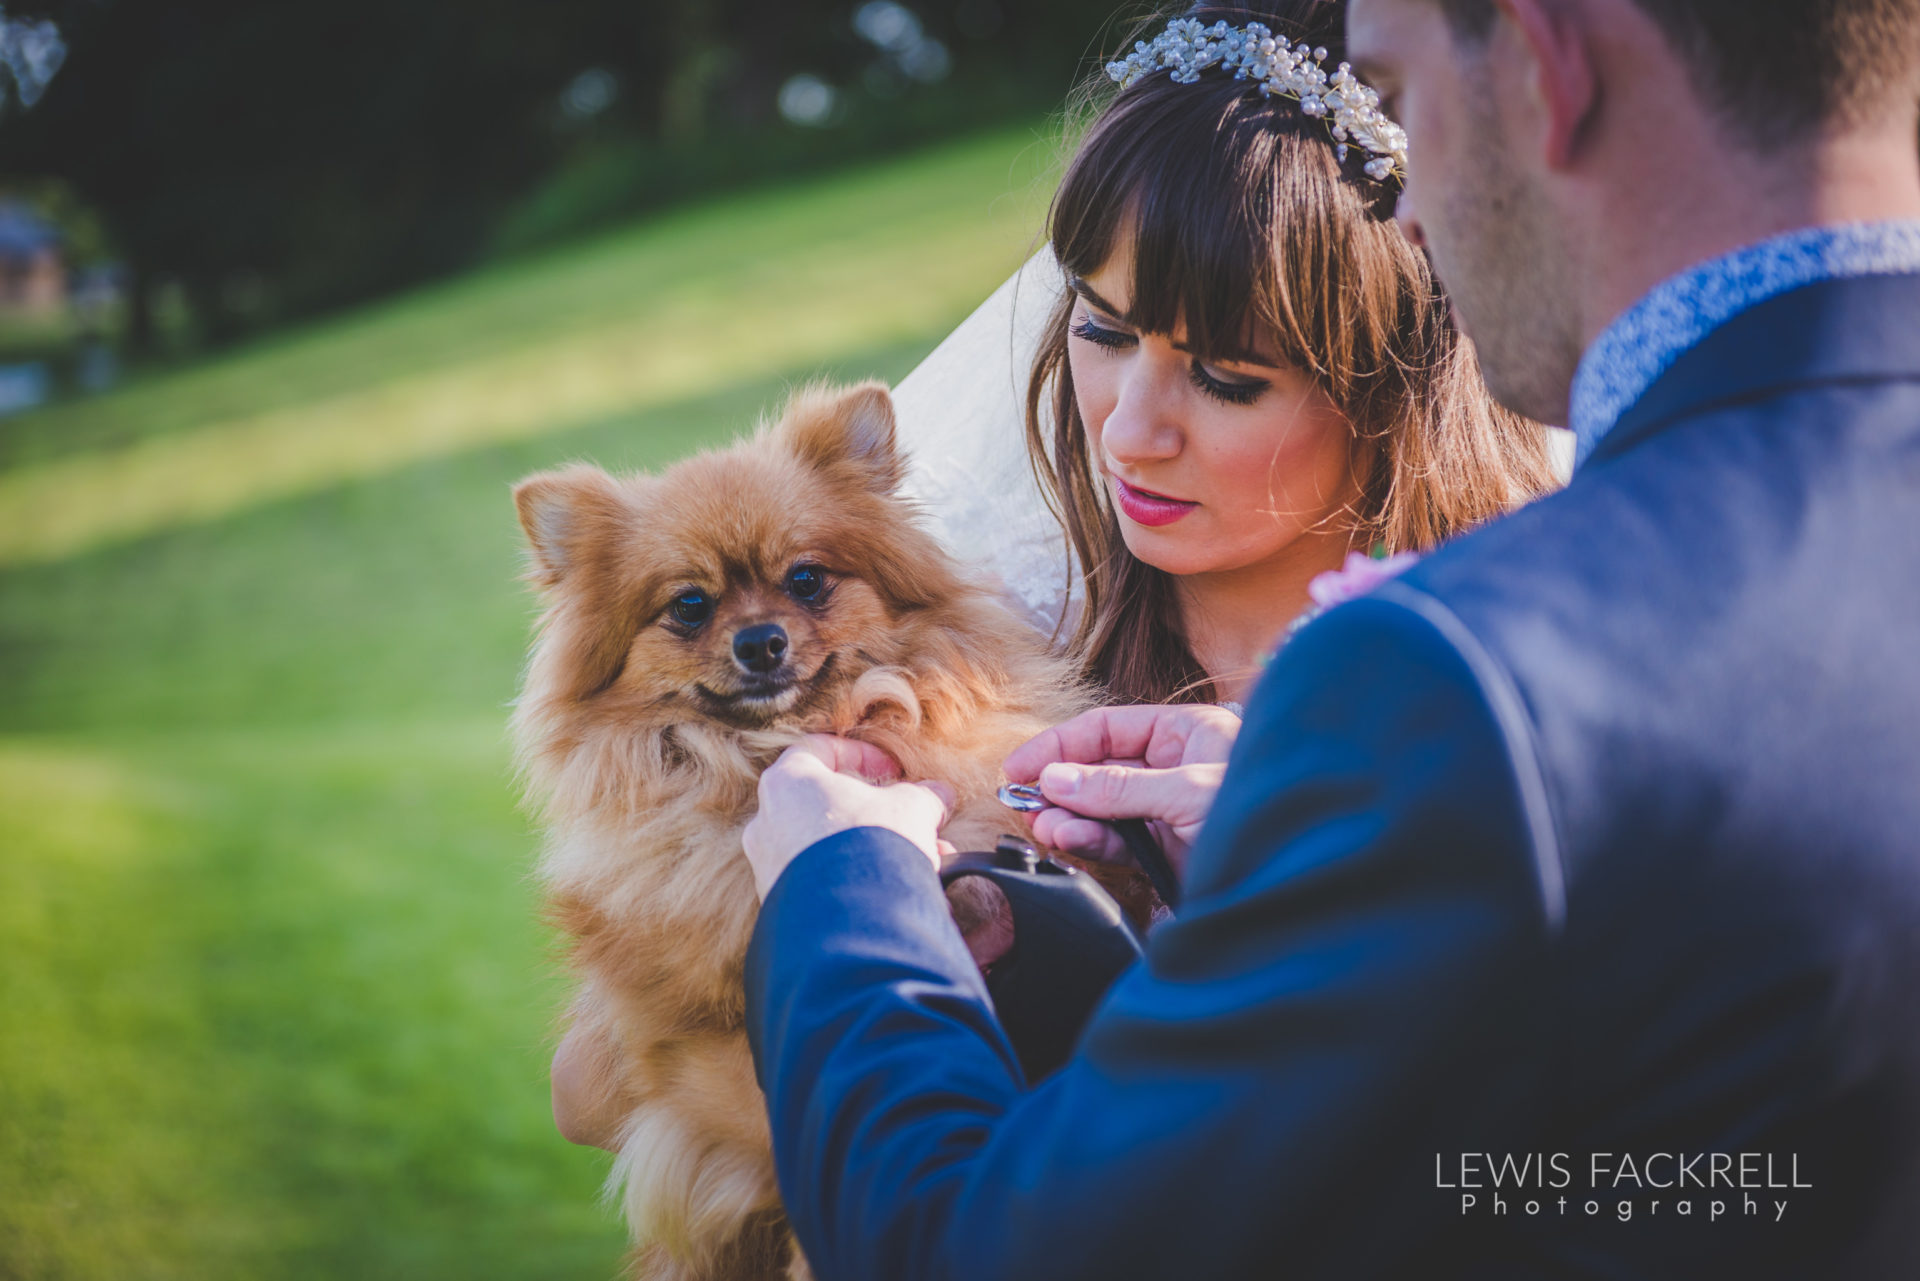 Lewis-Fackrell-Photography-Wedding-Photographer-Cardiff-Swansea-Bristol-Newport-Pre-wedding-photoshoot-cerian-dan-canada-lake-lodge-llantrisant--91